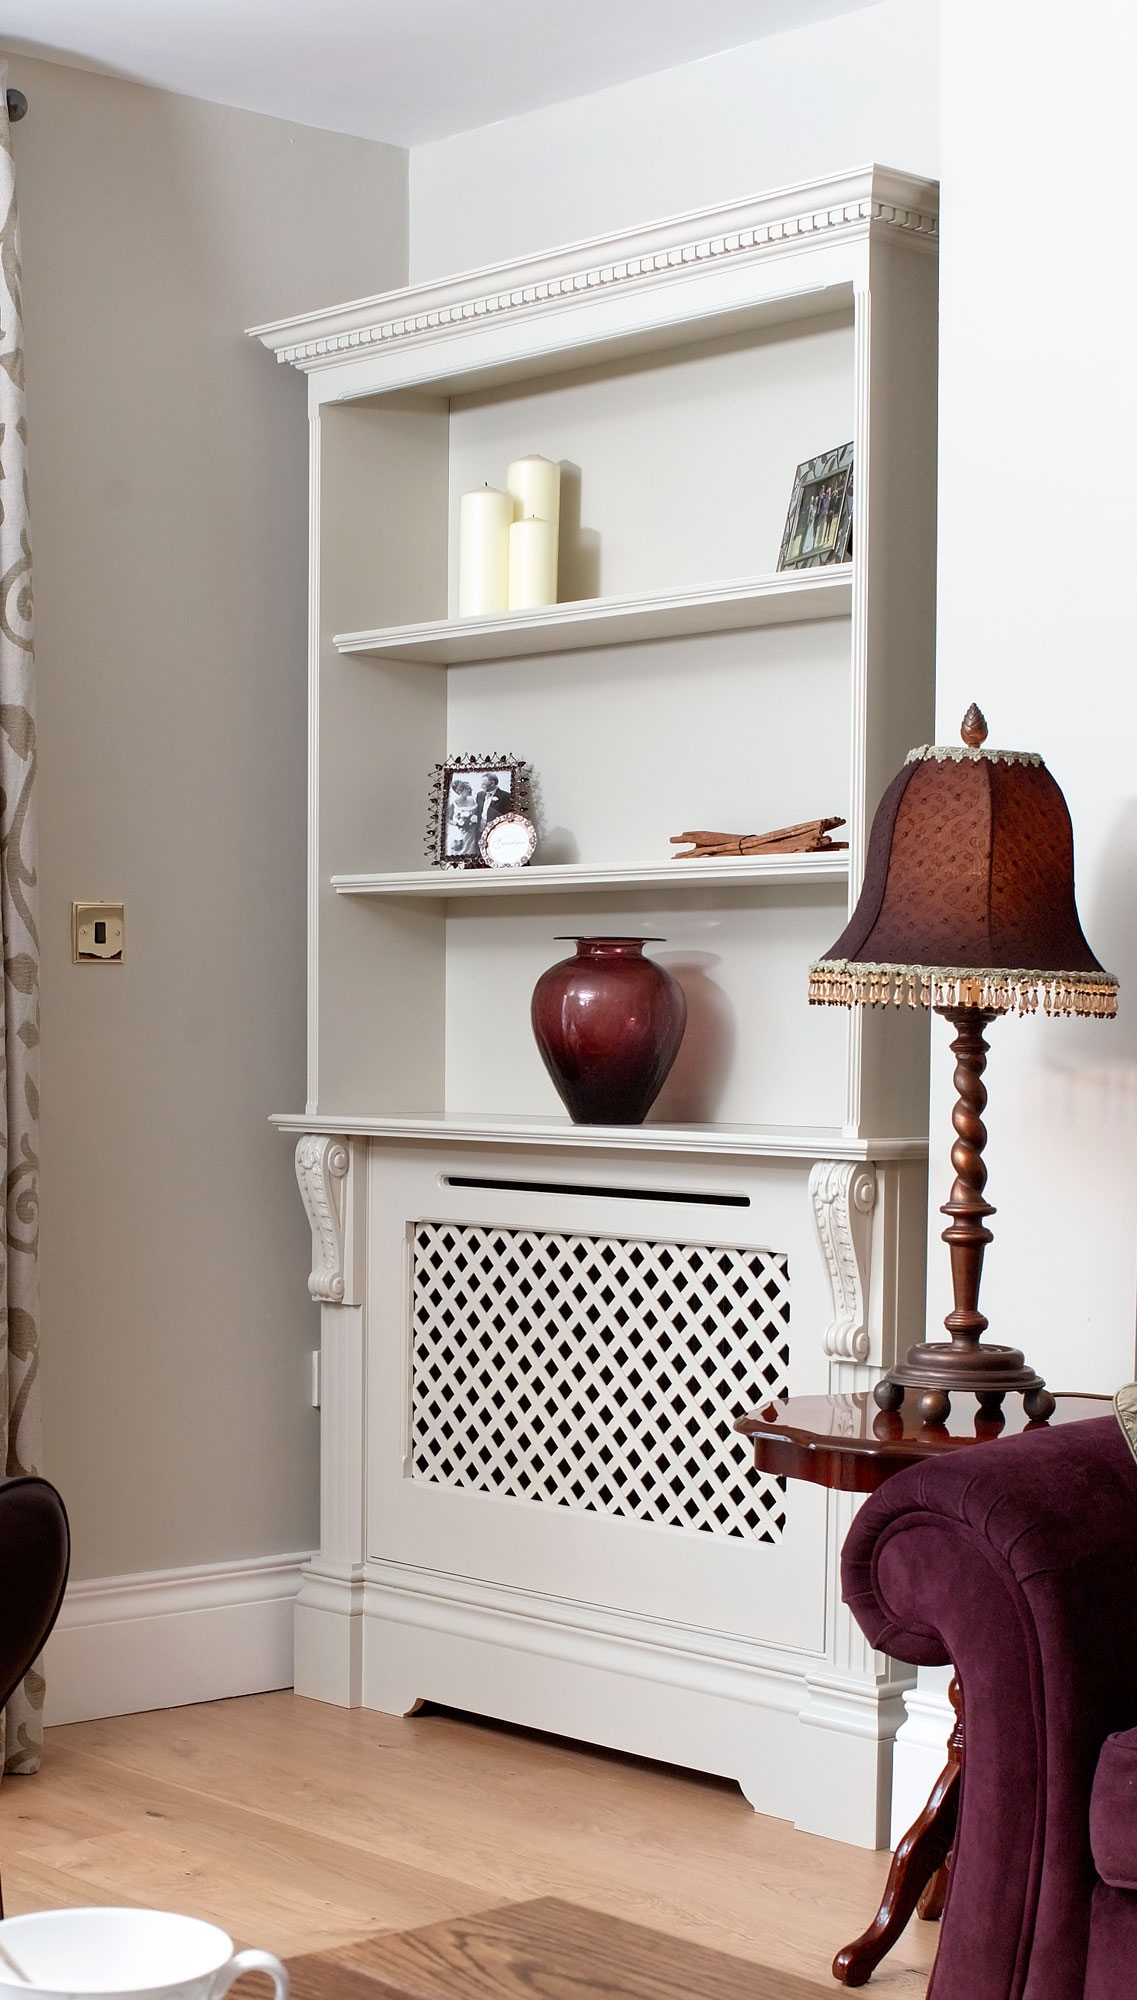 Popular Photo of Radiator Cabinet Bookcase